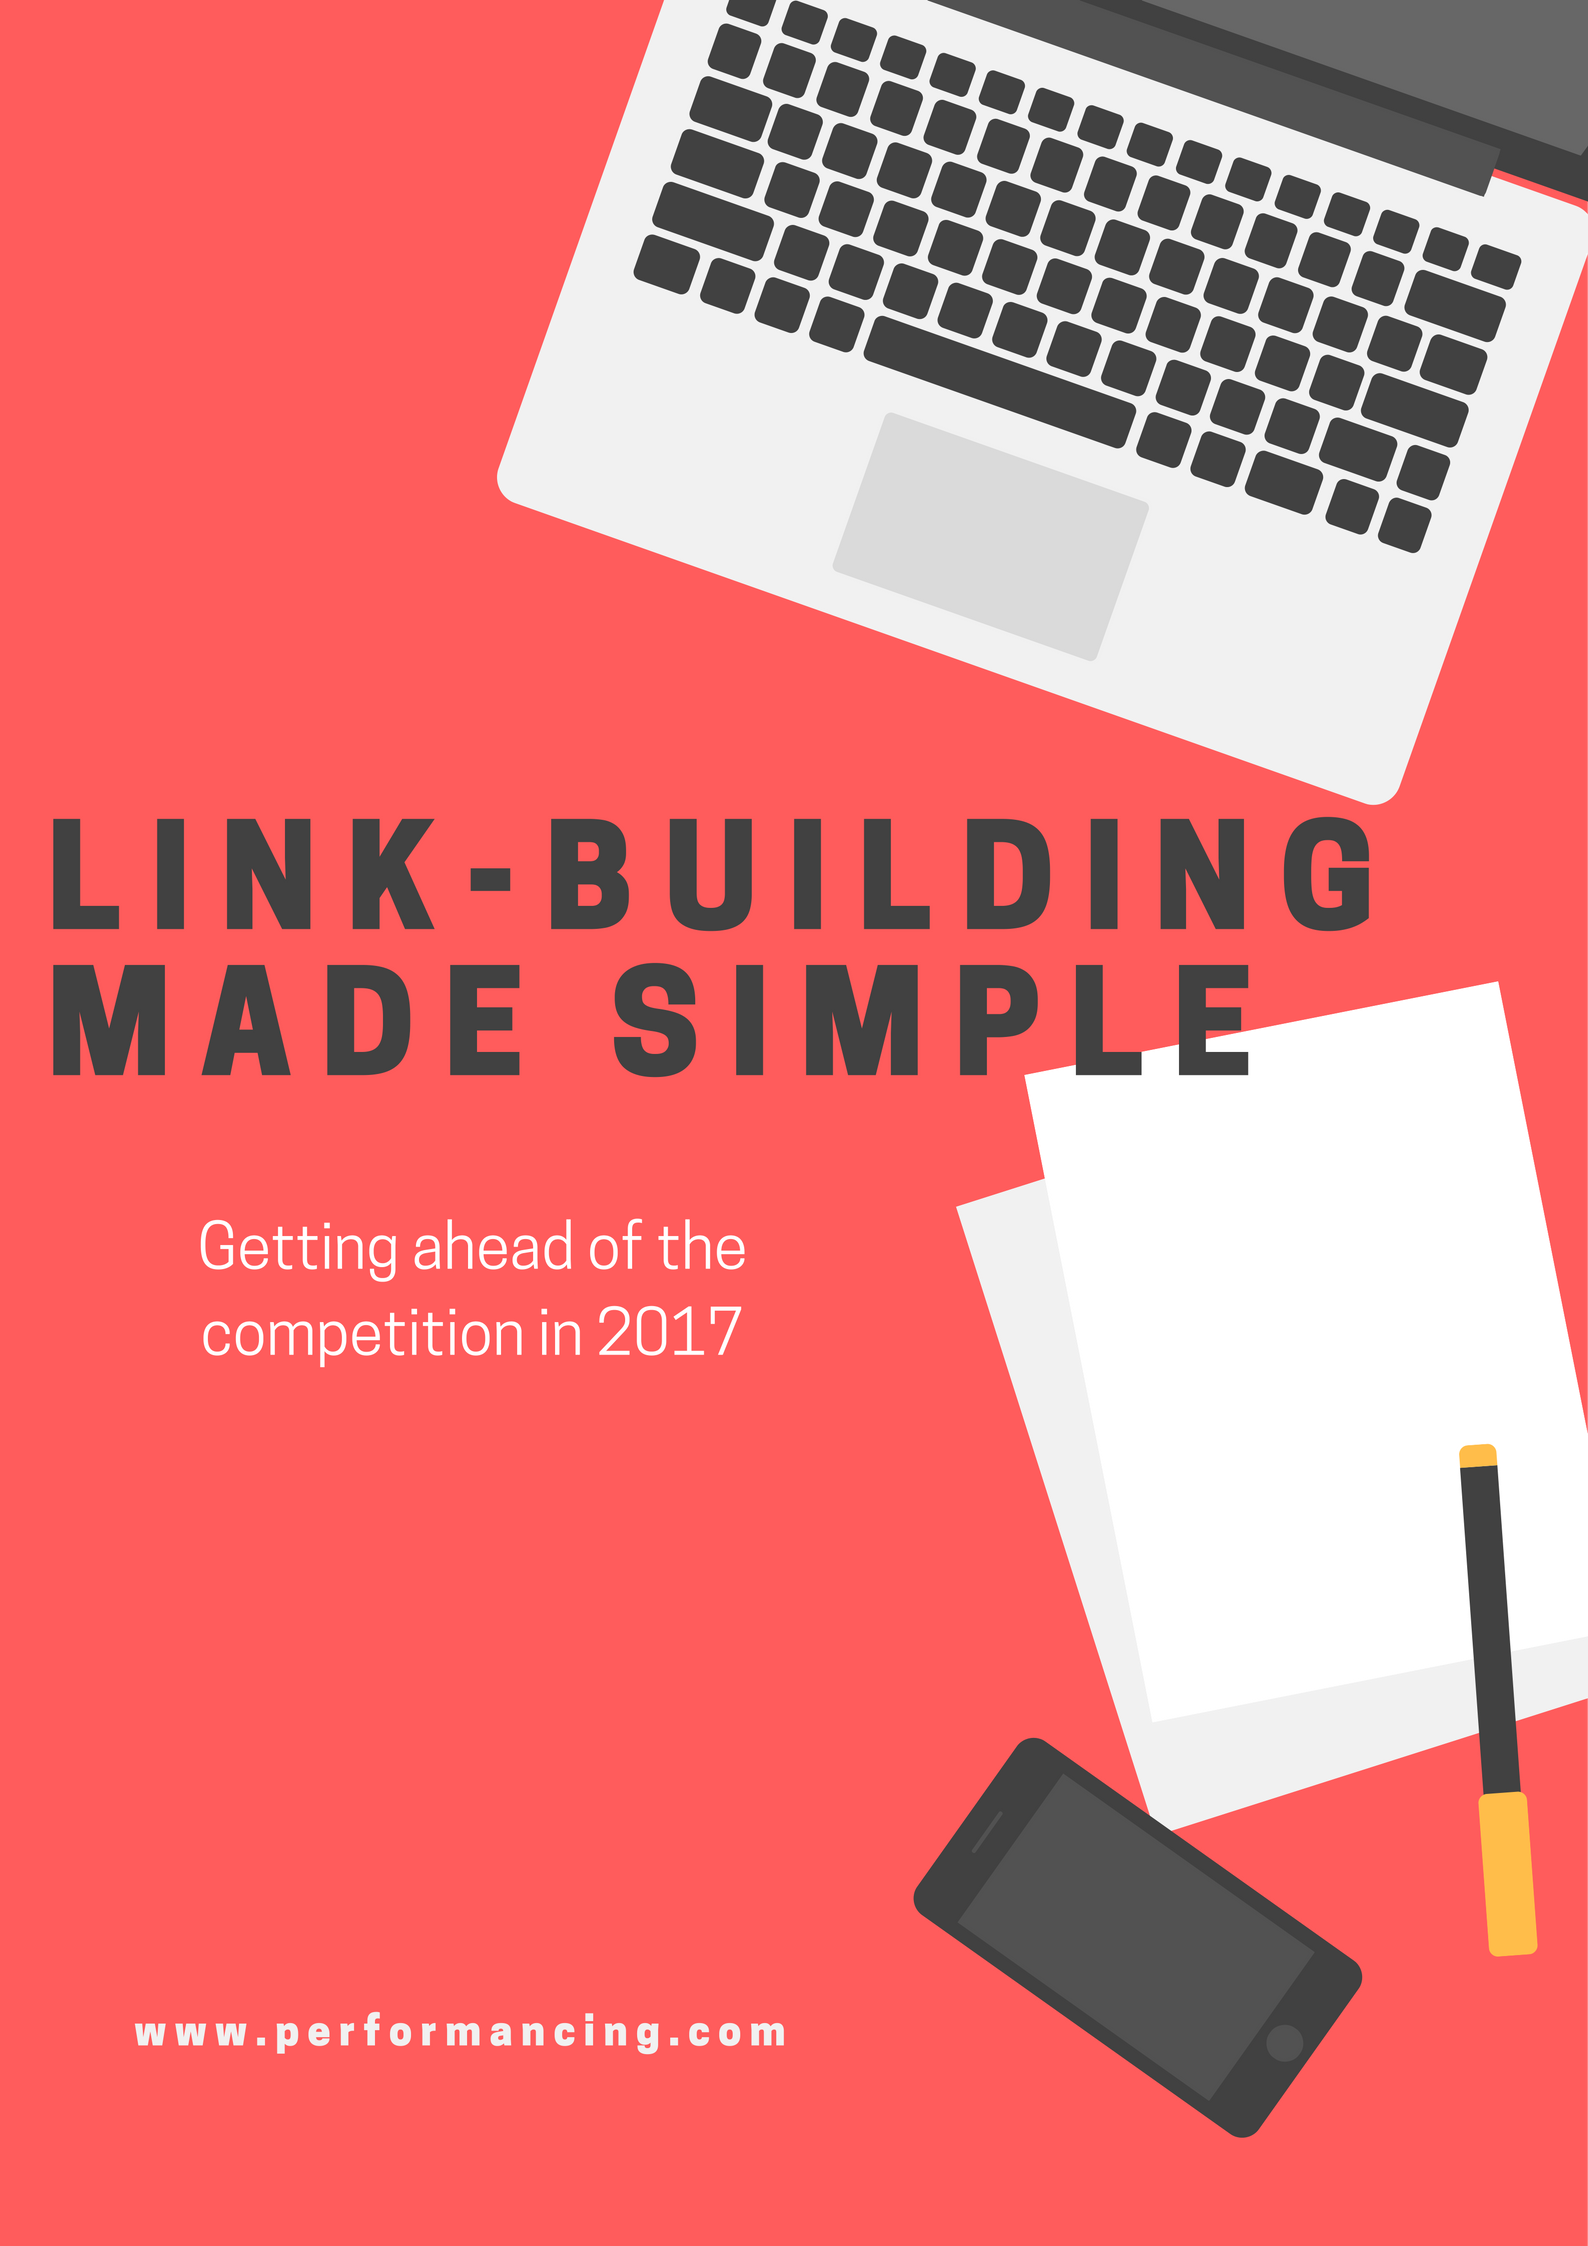 Link-Building Made Simple